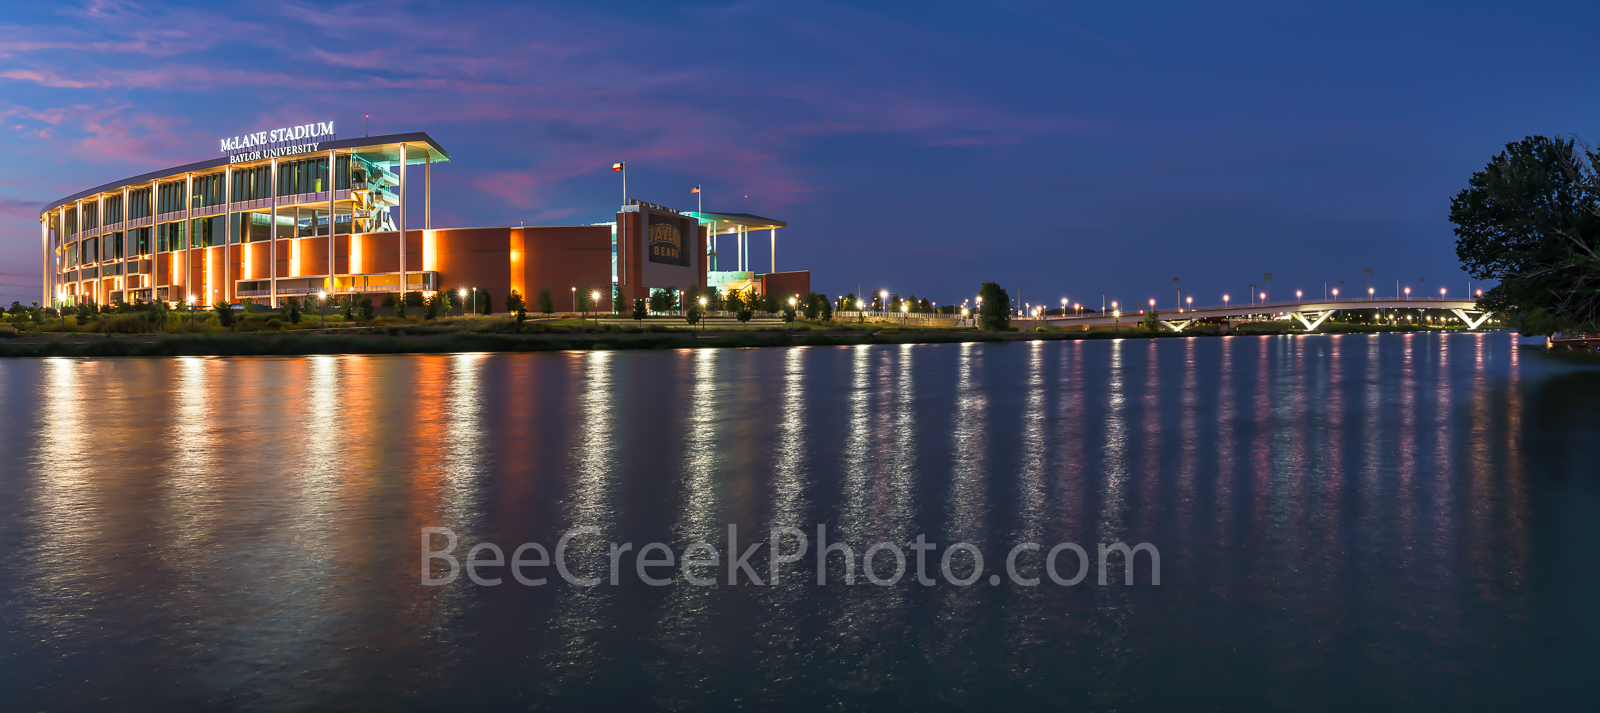 Waco, sunset, McLane Stadium, Baylor University, dusk, blue hour, Baylor Bears, stadium , University of Baylor, school